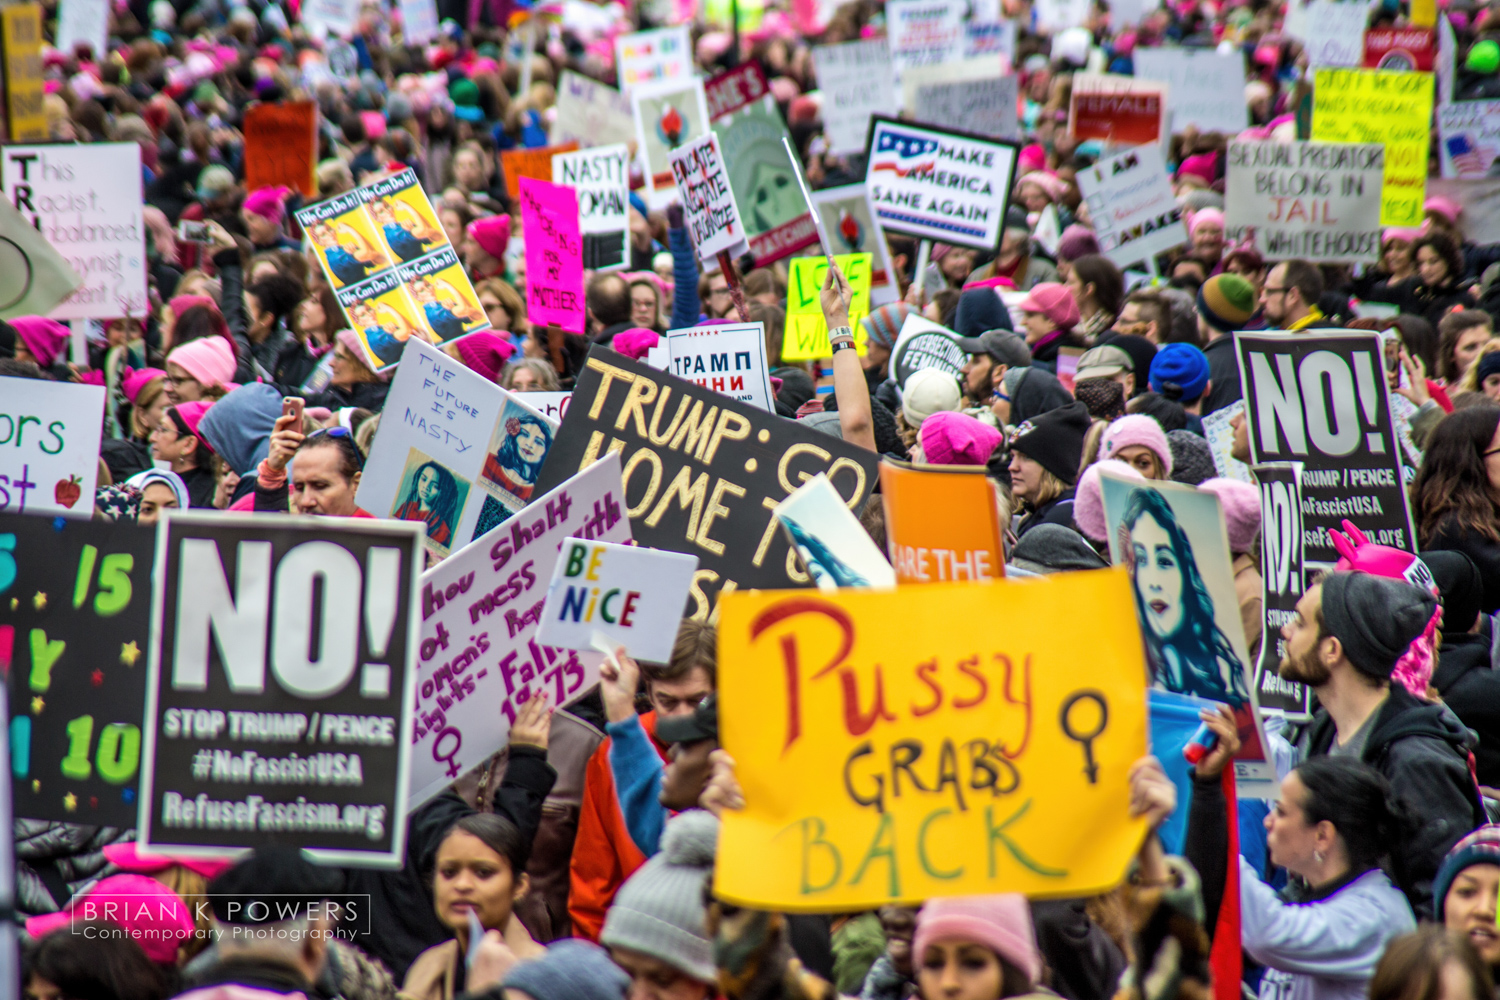 Womens-march-on-washington-2017-Brian-K-Powers-Photography-0122.jpg